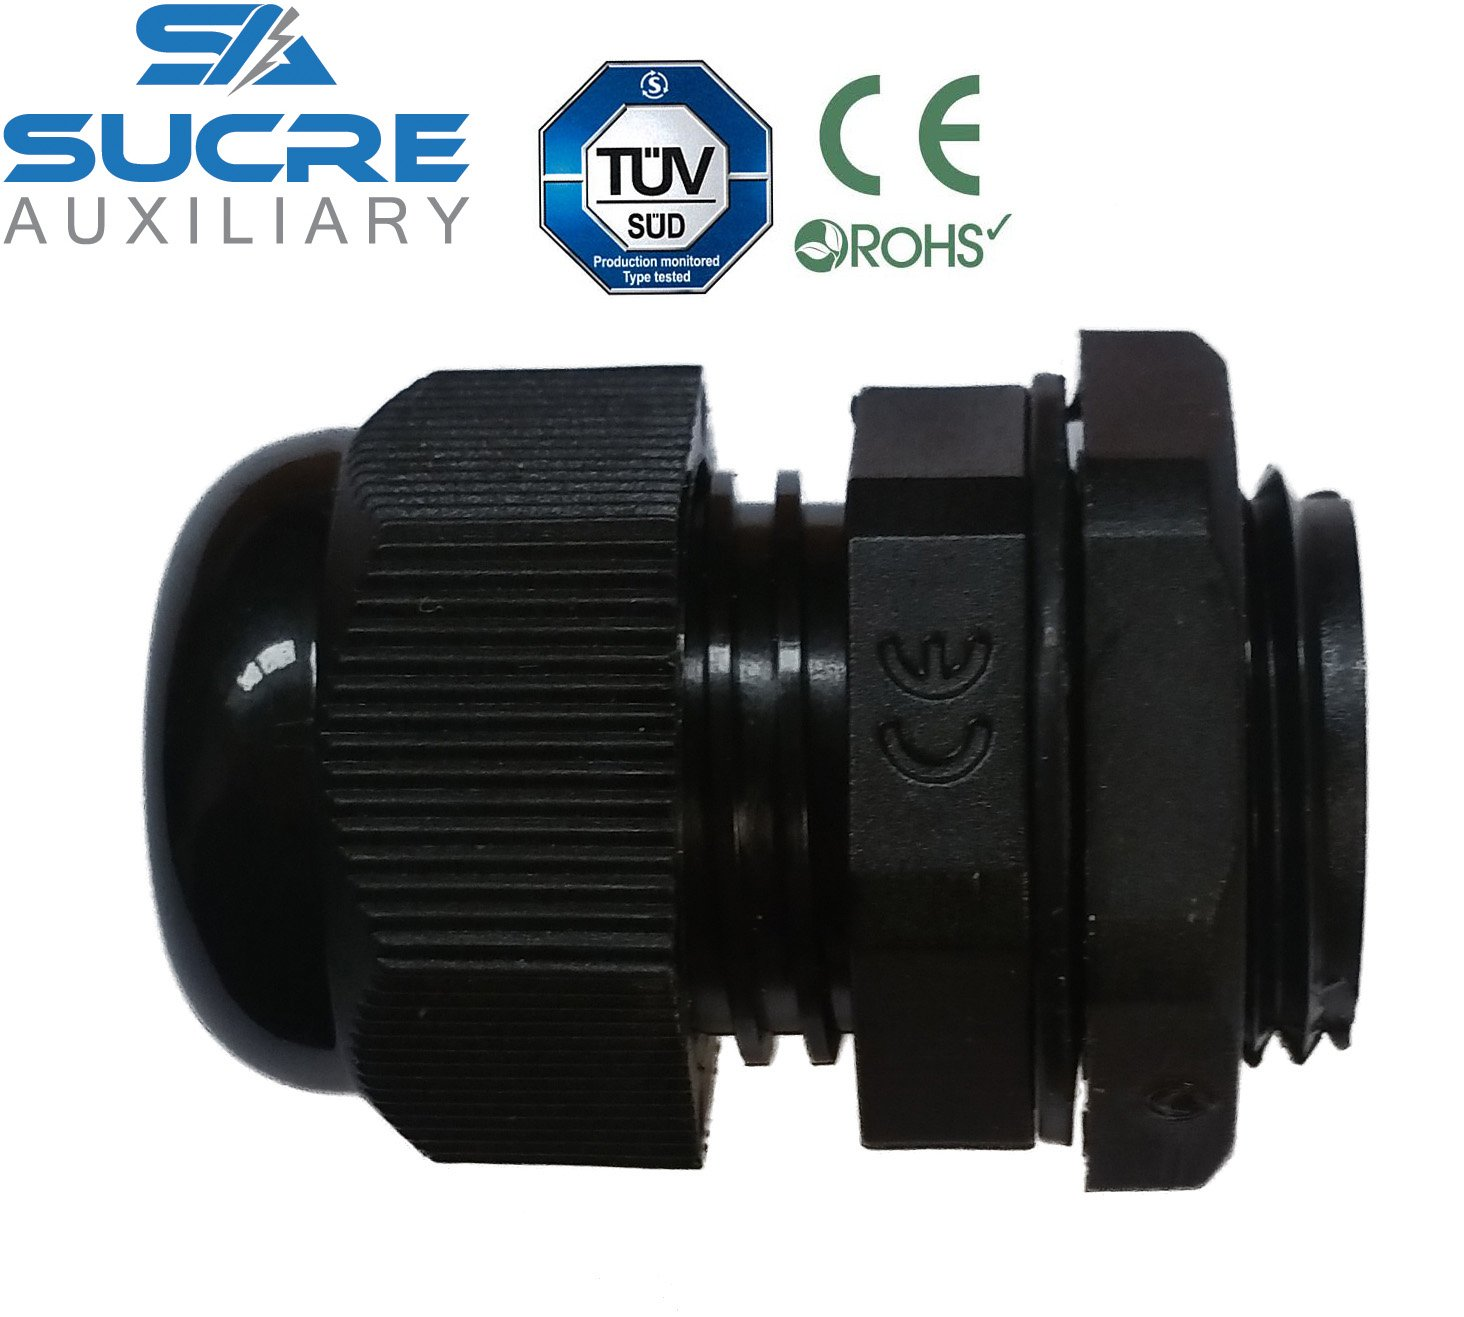 Sucre Auxiliary /® Cable Glands M8, Black, 1 Waterproof IP68 Compression